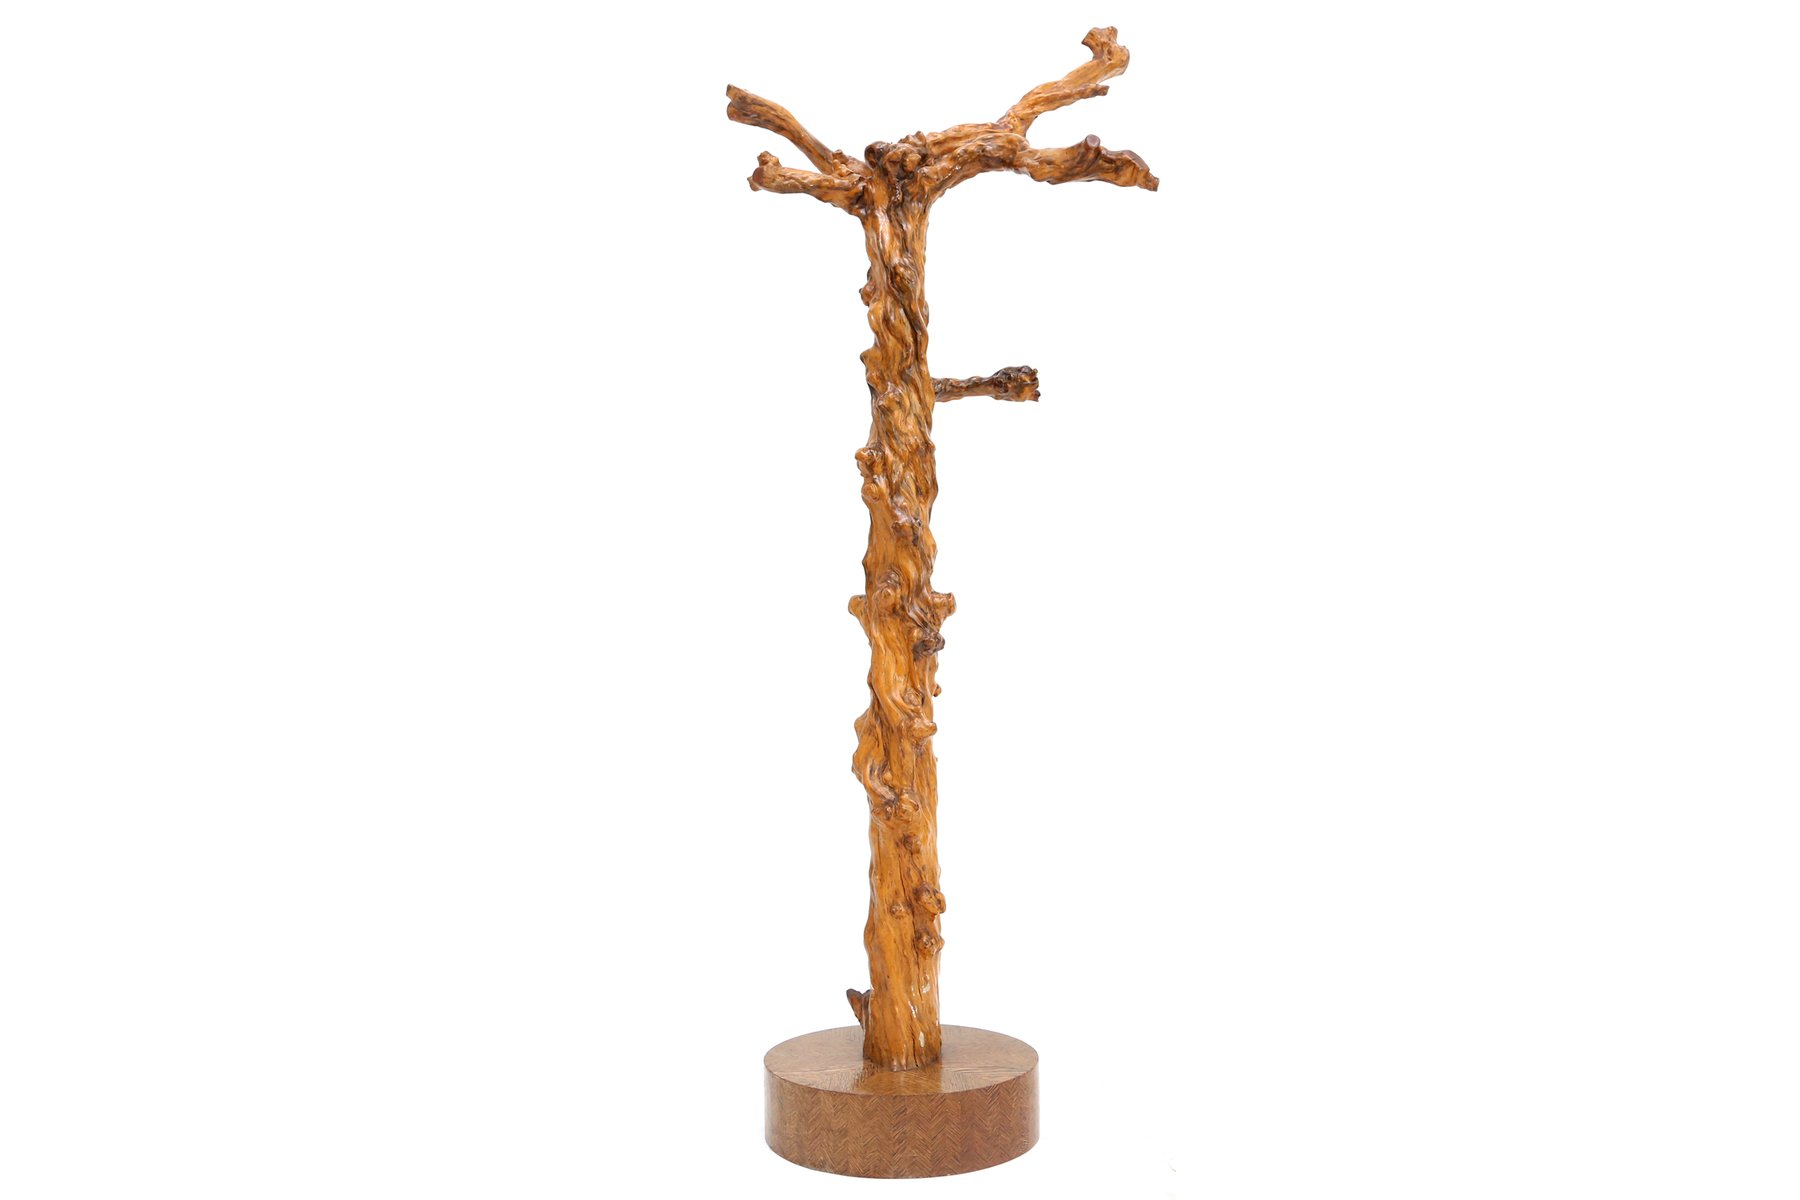 Very Impressive portraiture of French Grape Wood Tree Coat Rack 1930s for  sale at Pamono with